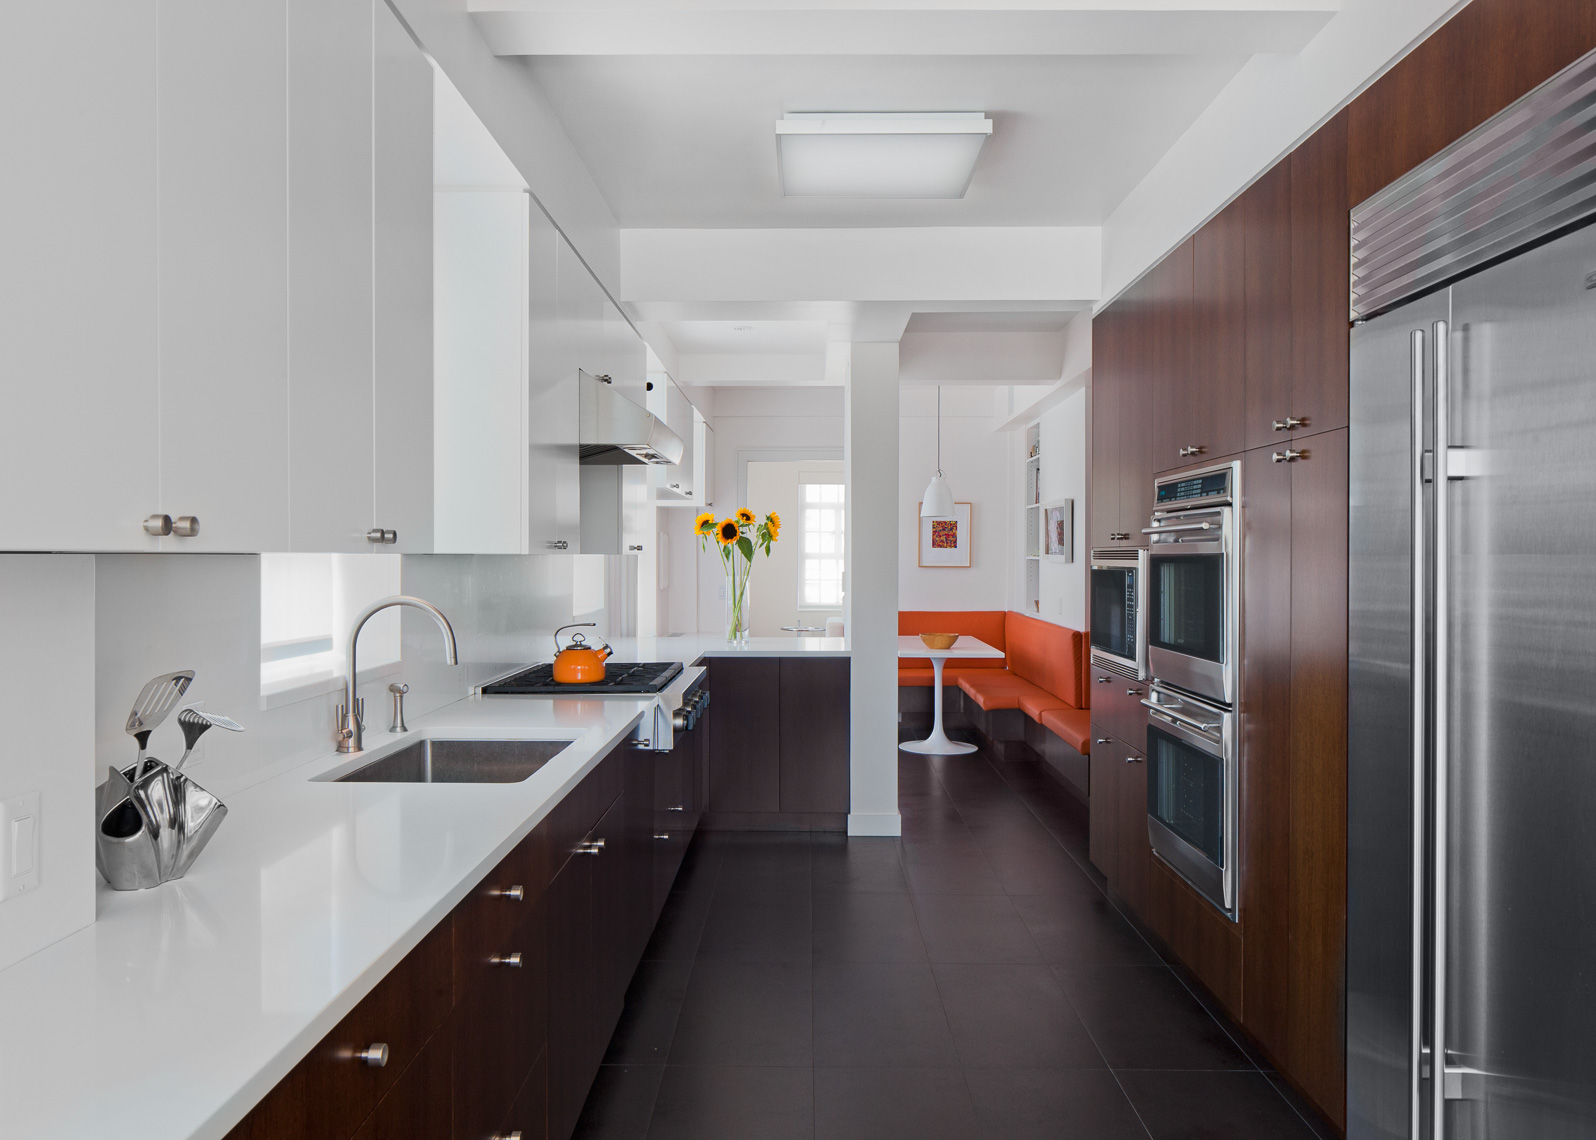 Wide view of a renovated kitchen in an Upper West Side Apartment in New York City